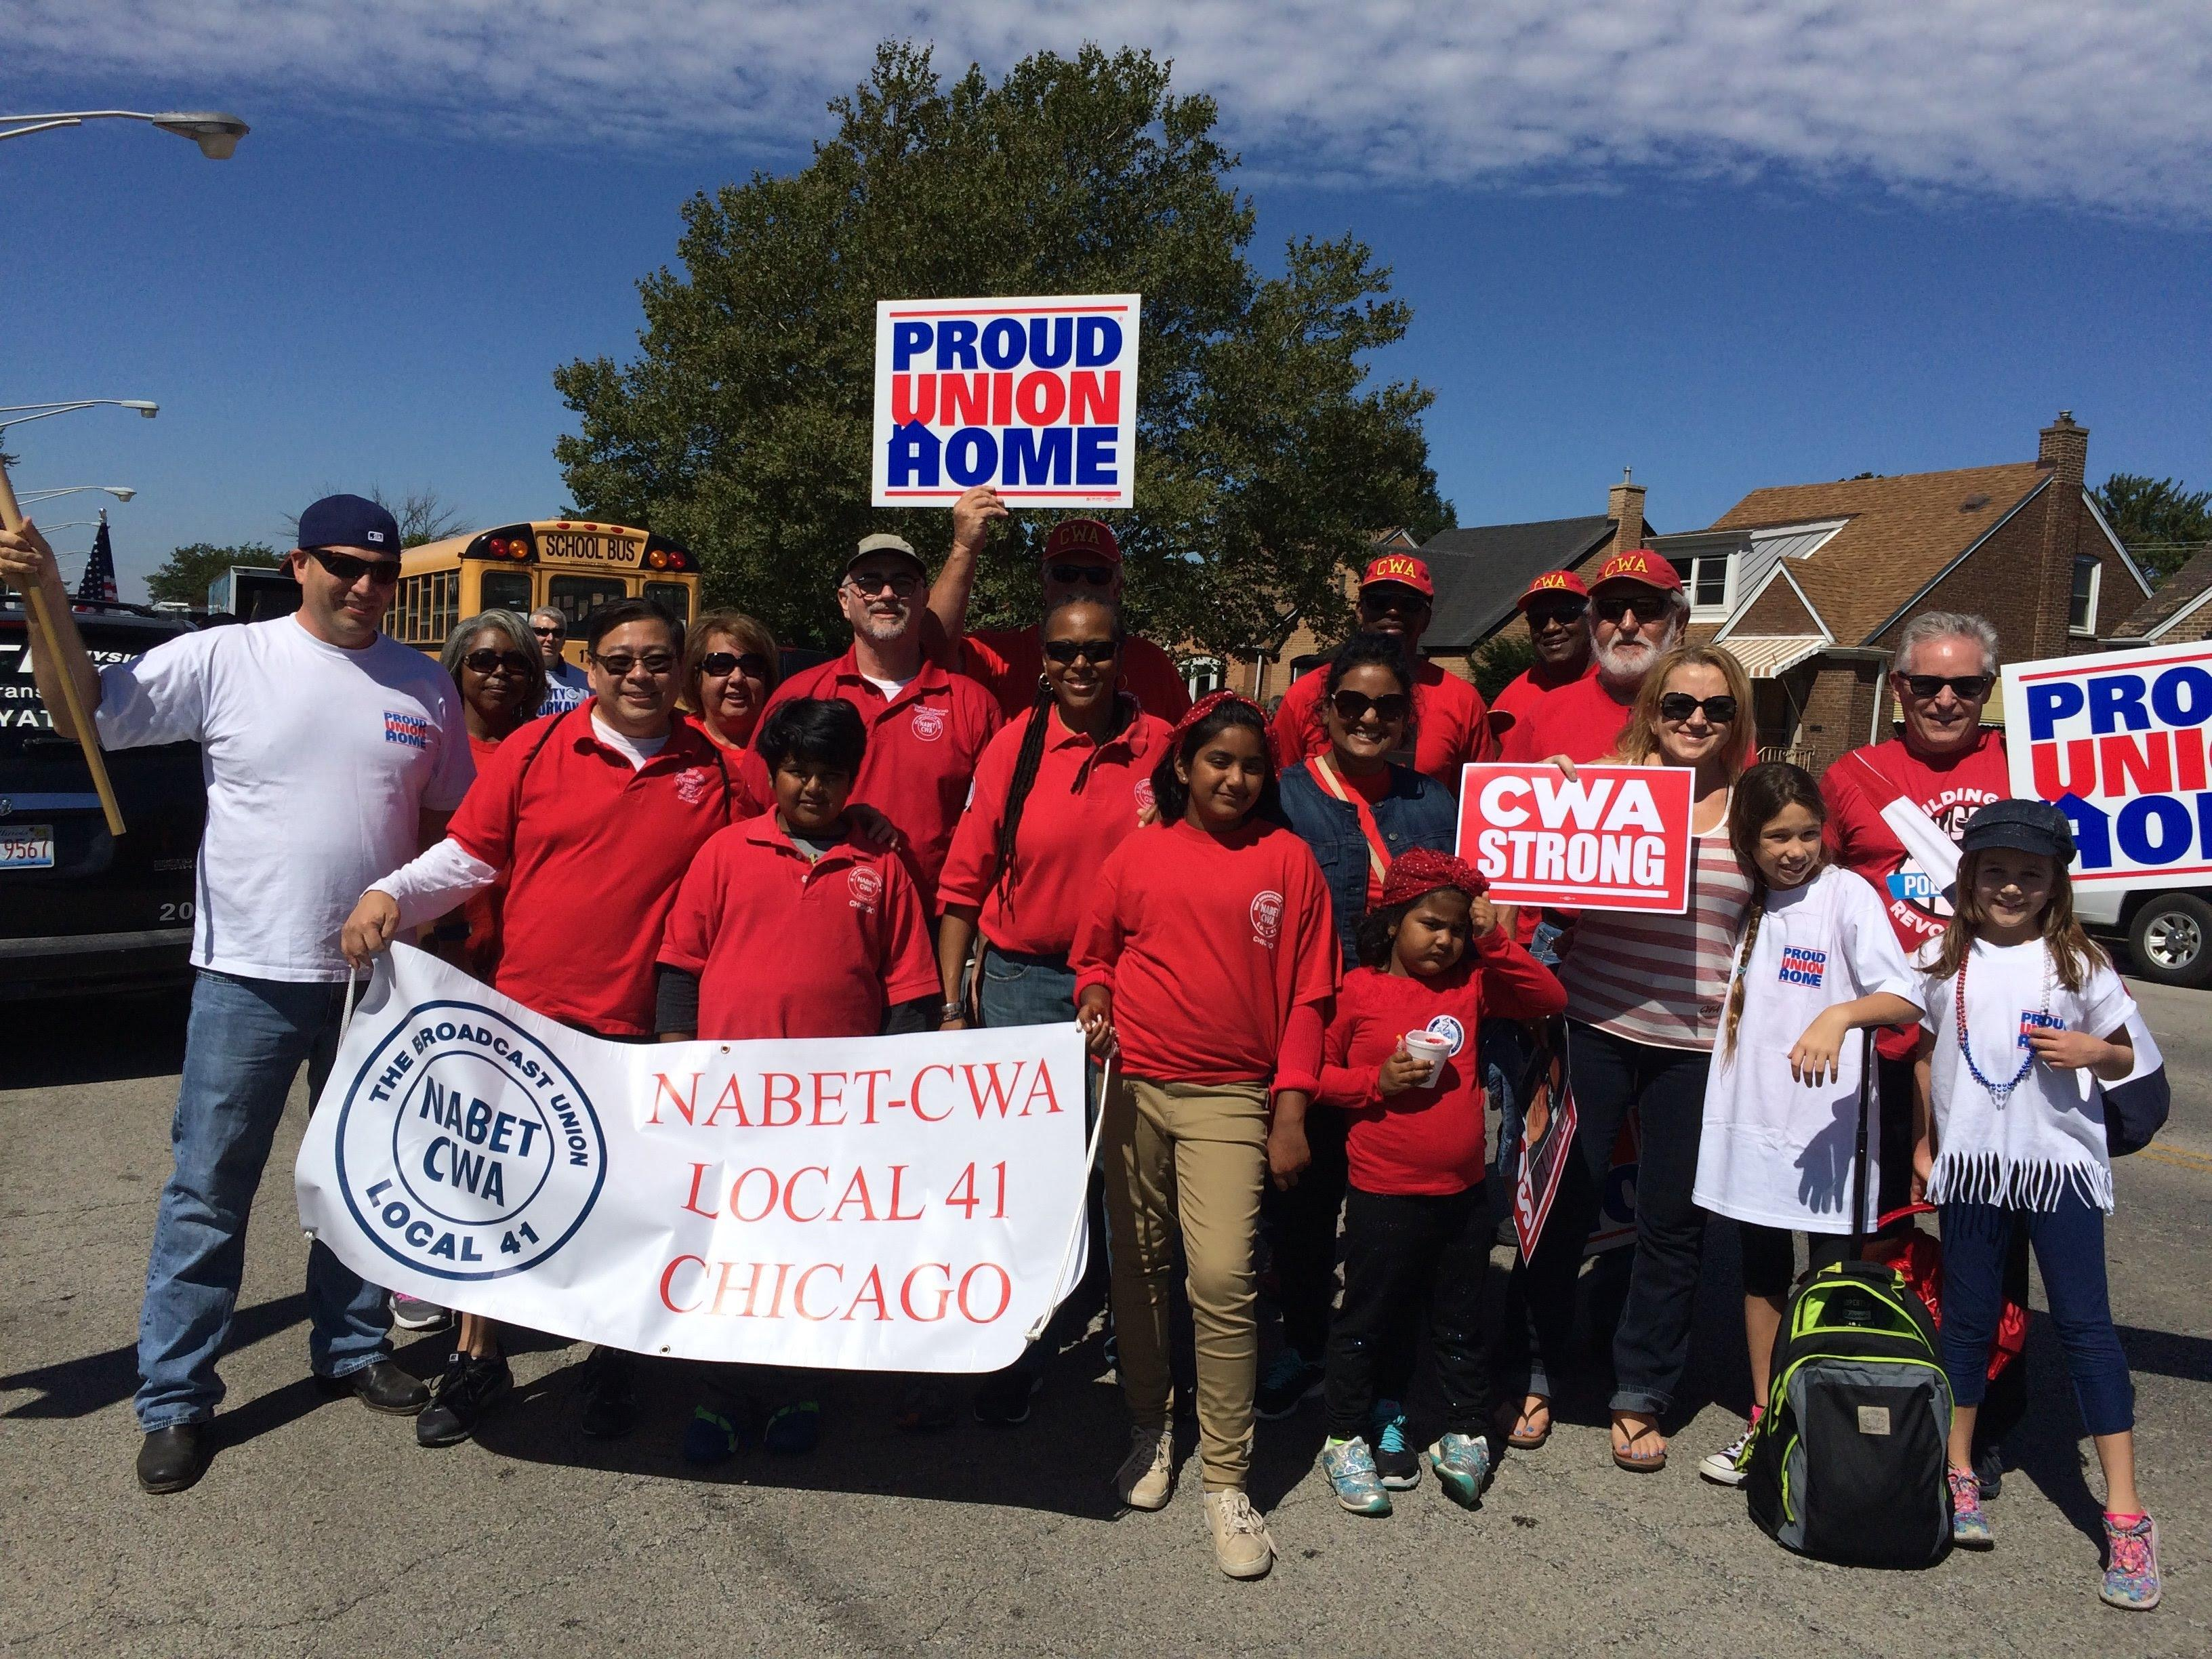 NABET-CWA Local 41 Chicago